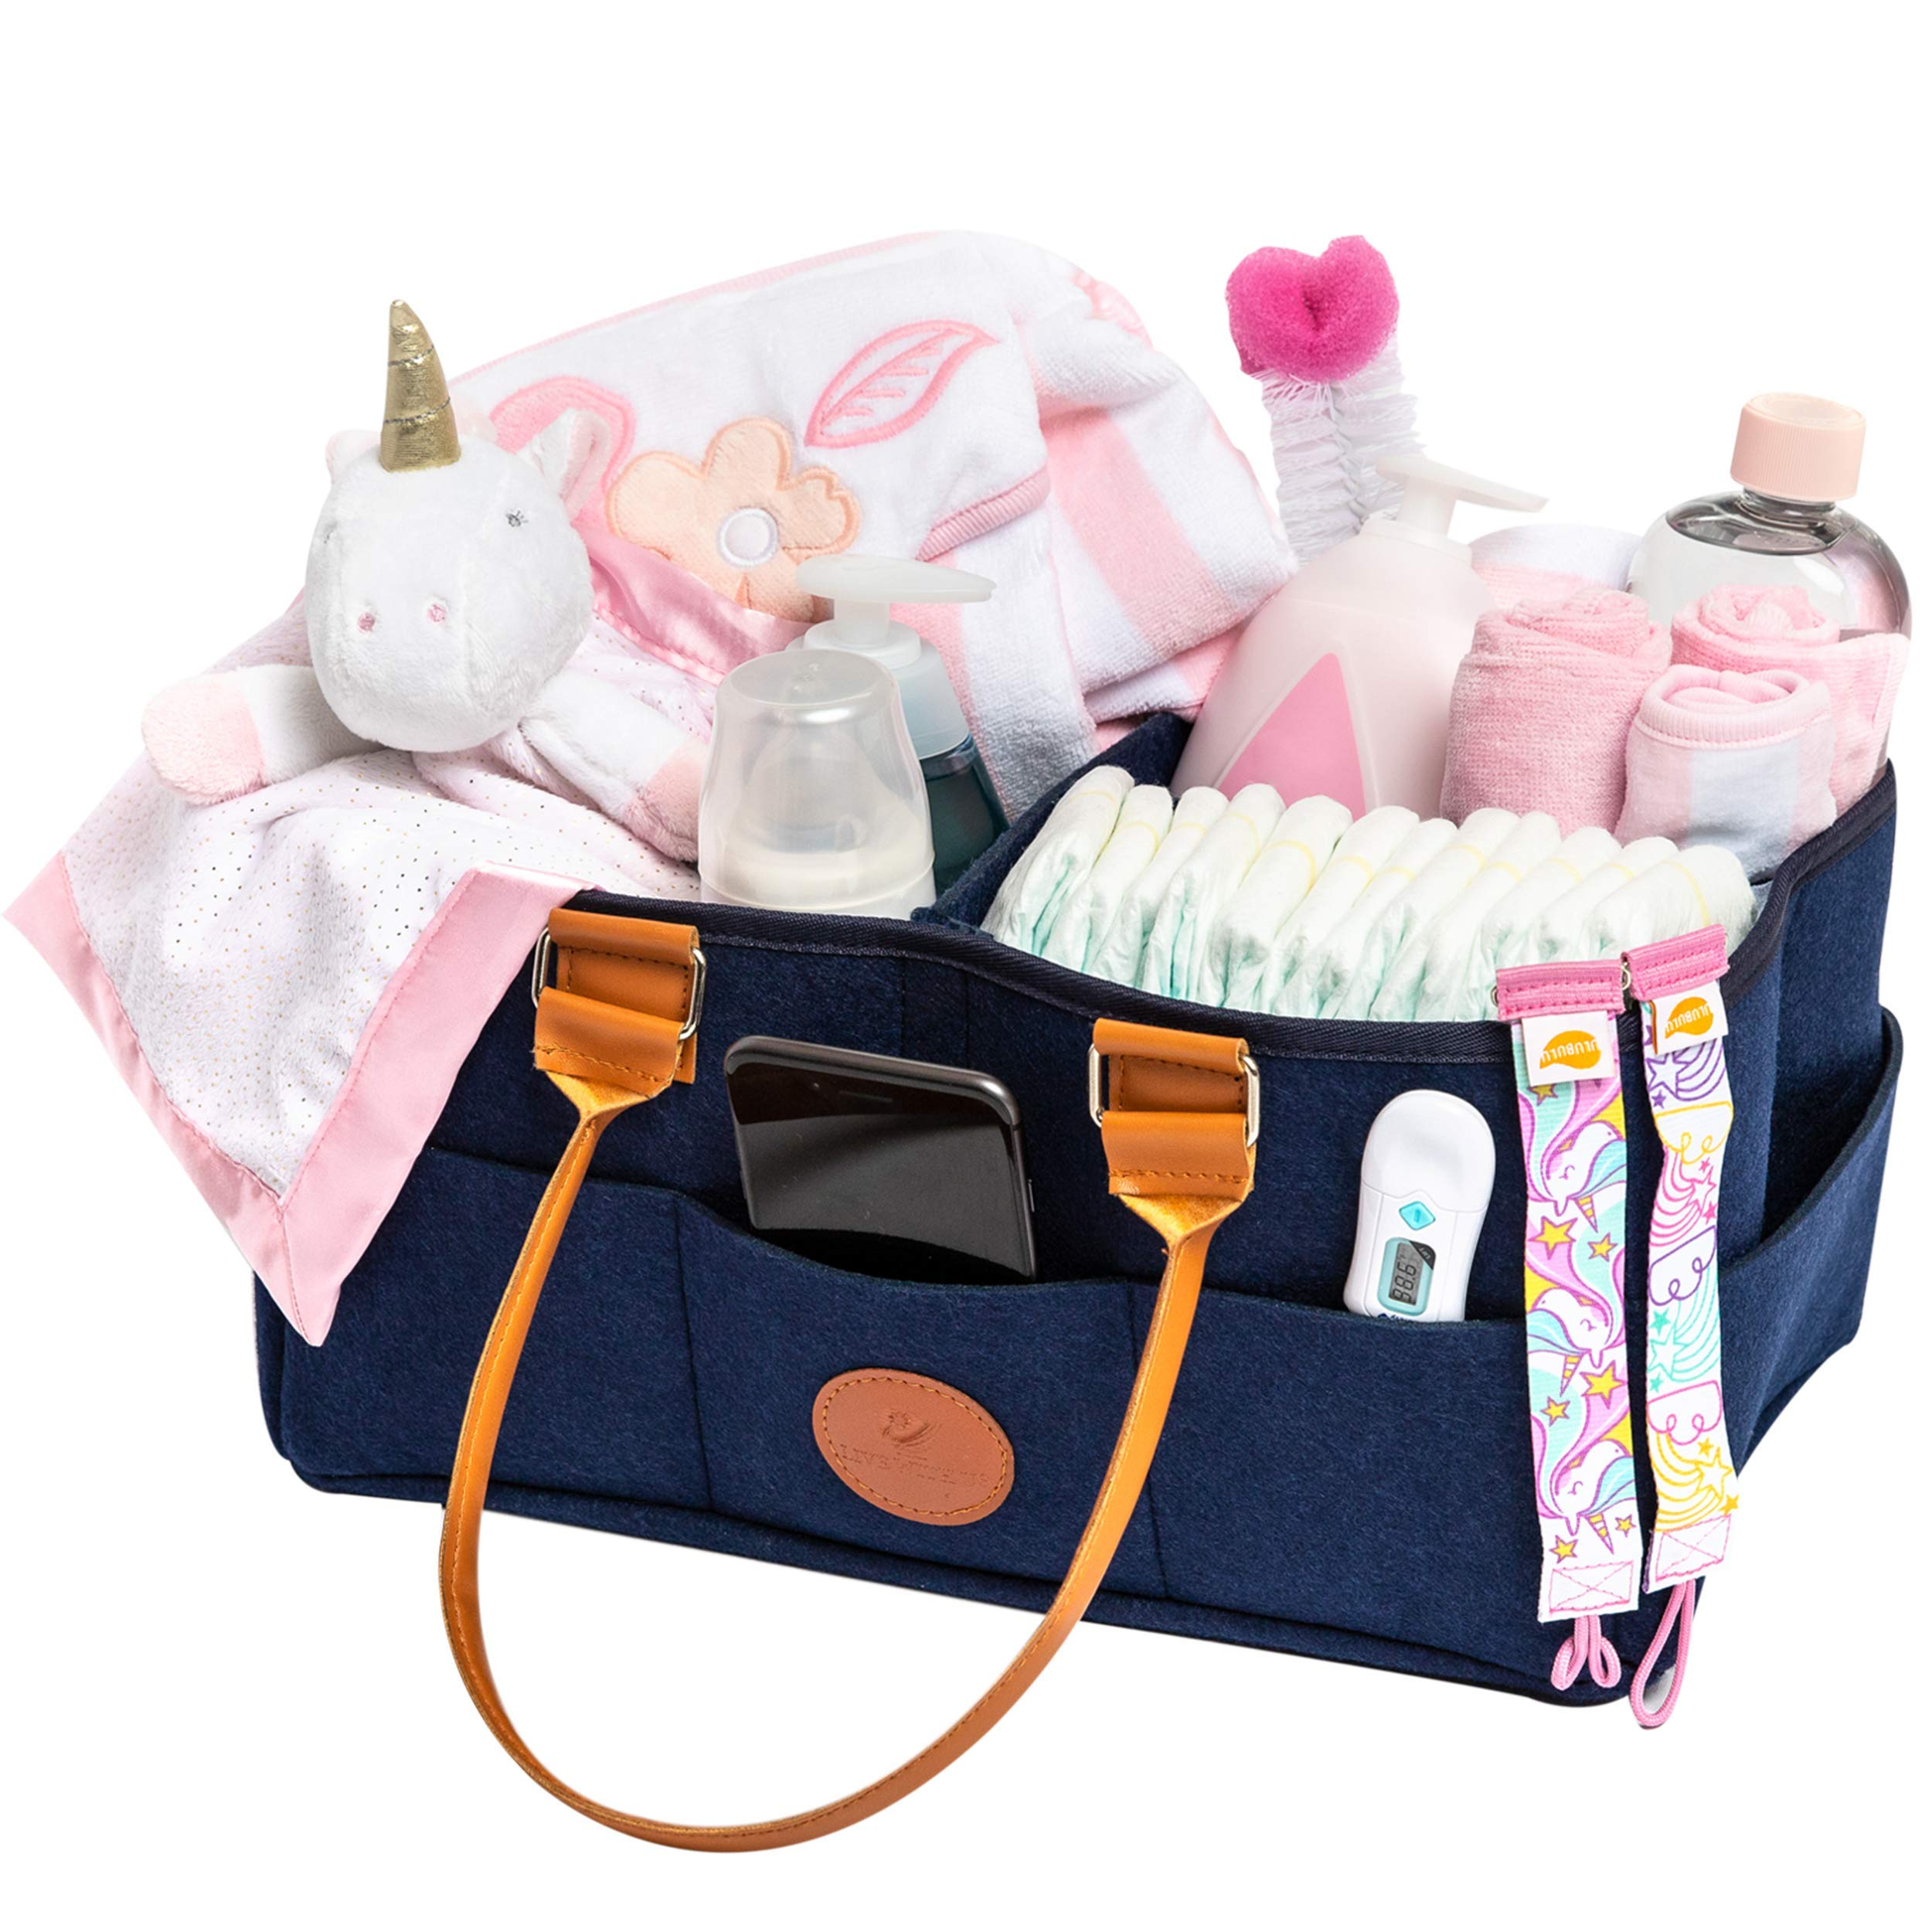 Unique Baby Diaper Caddy Organizer- Nursery Station Compact | Baby Basket Portable Storage Bag for Changing Table and Car | Newborn Boy Girl Essentials Basket Organizers Baby Shower Gift Registry by Live With Us